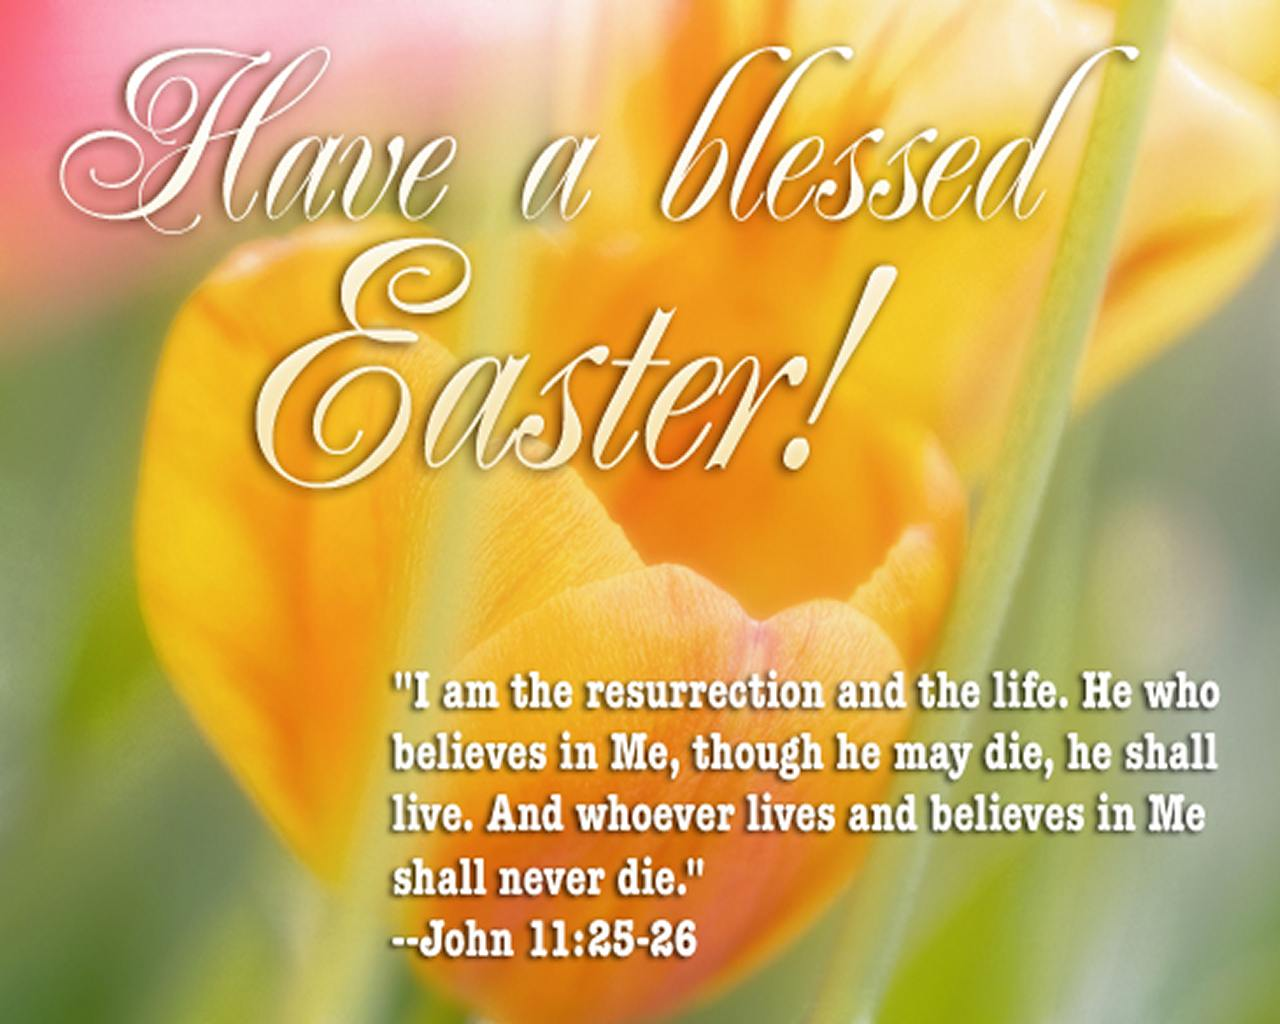 Easter Sunday Greetings Card Merry Christmas And Happy New Year 2018